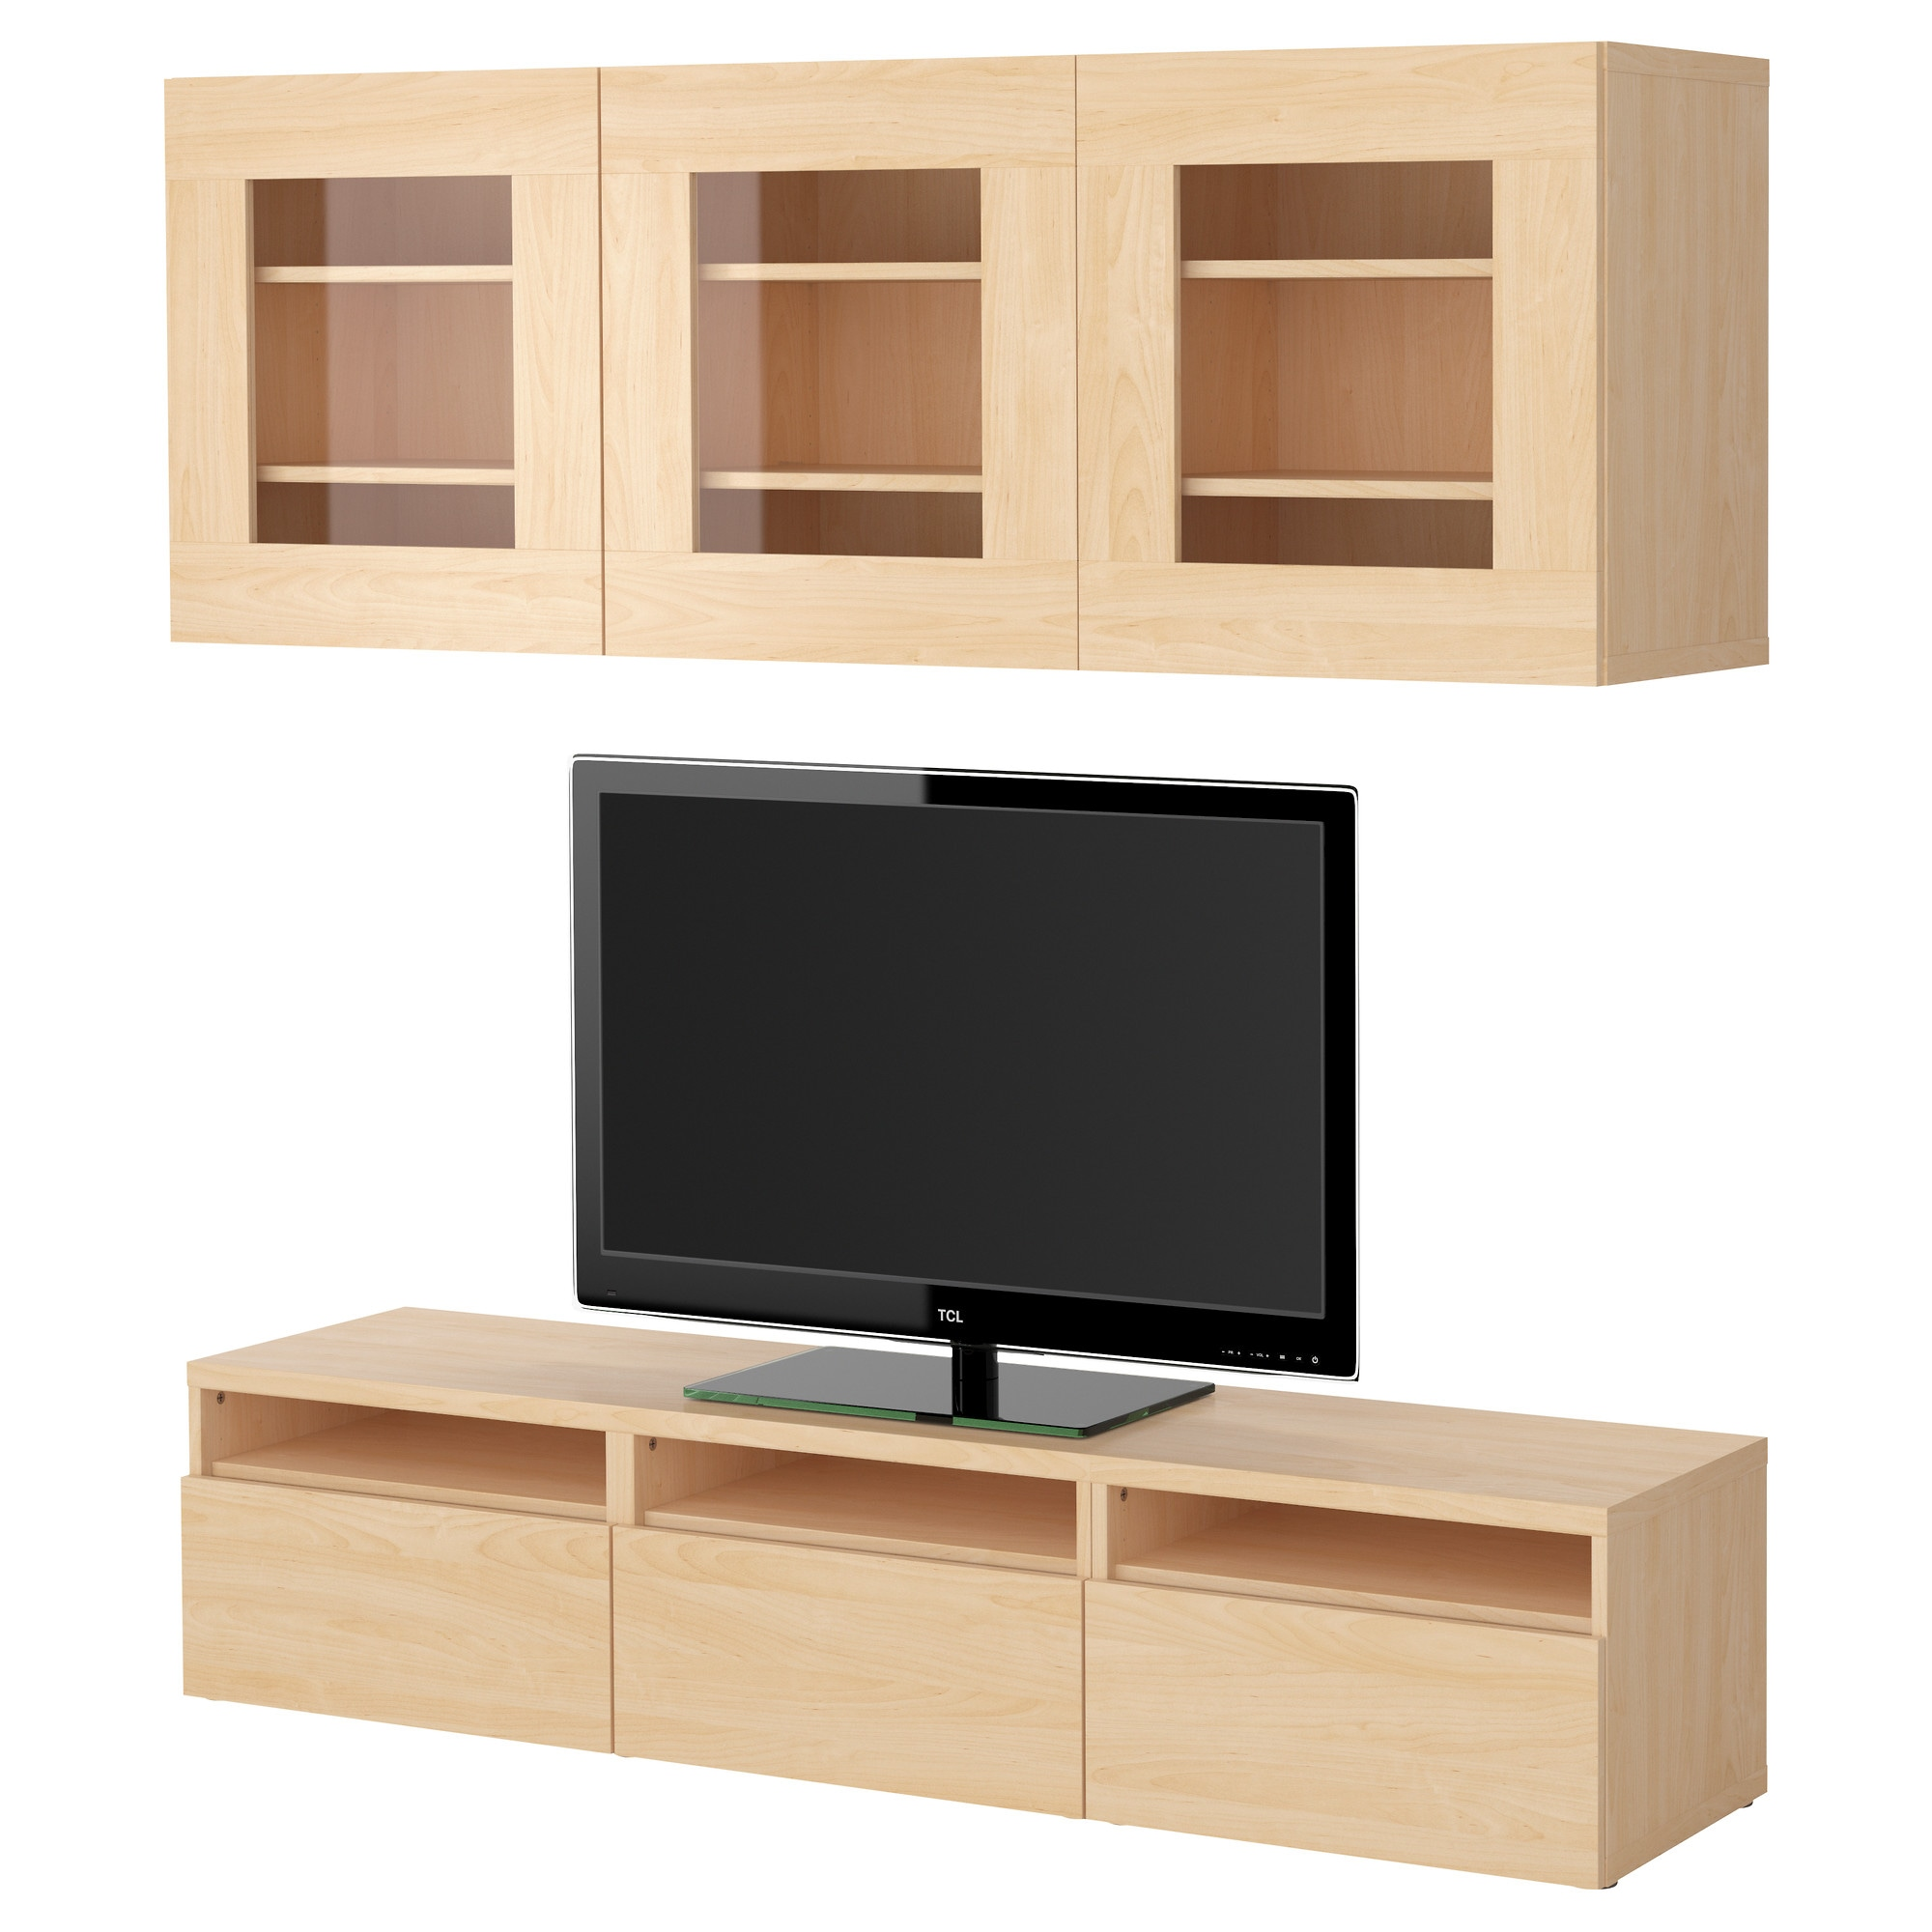 TV Stands - TV Cabinets - IKEA